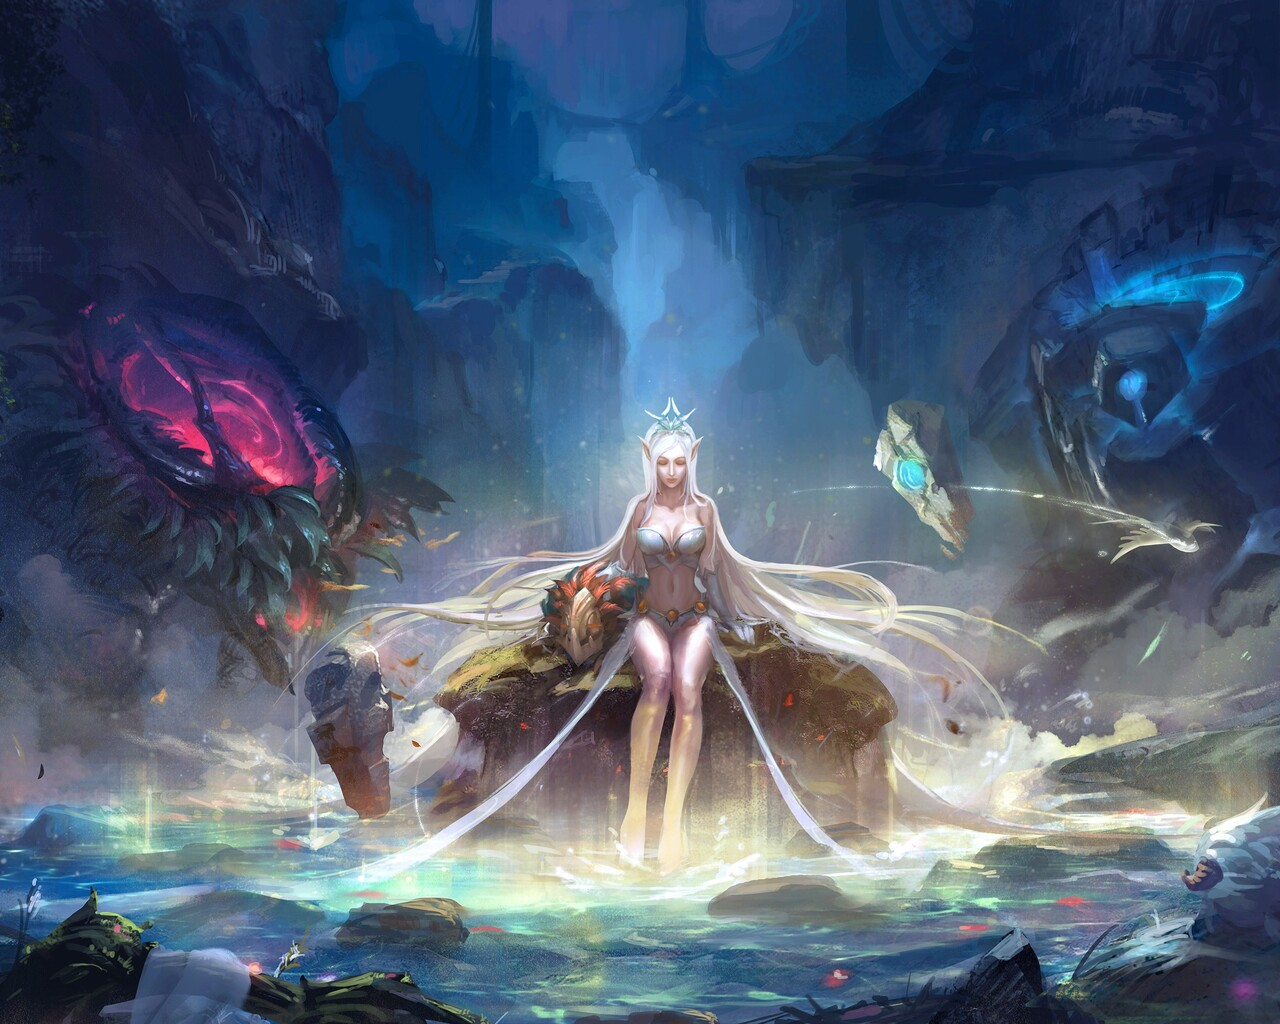 1280x1024 League Of Legends 1280x1024 Resolution Hd 4k Wallpapers Images Backgrounds Photos And Pictures